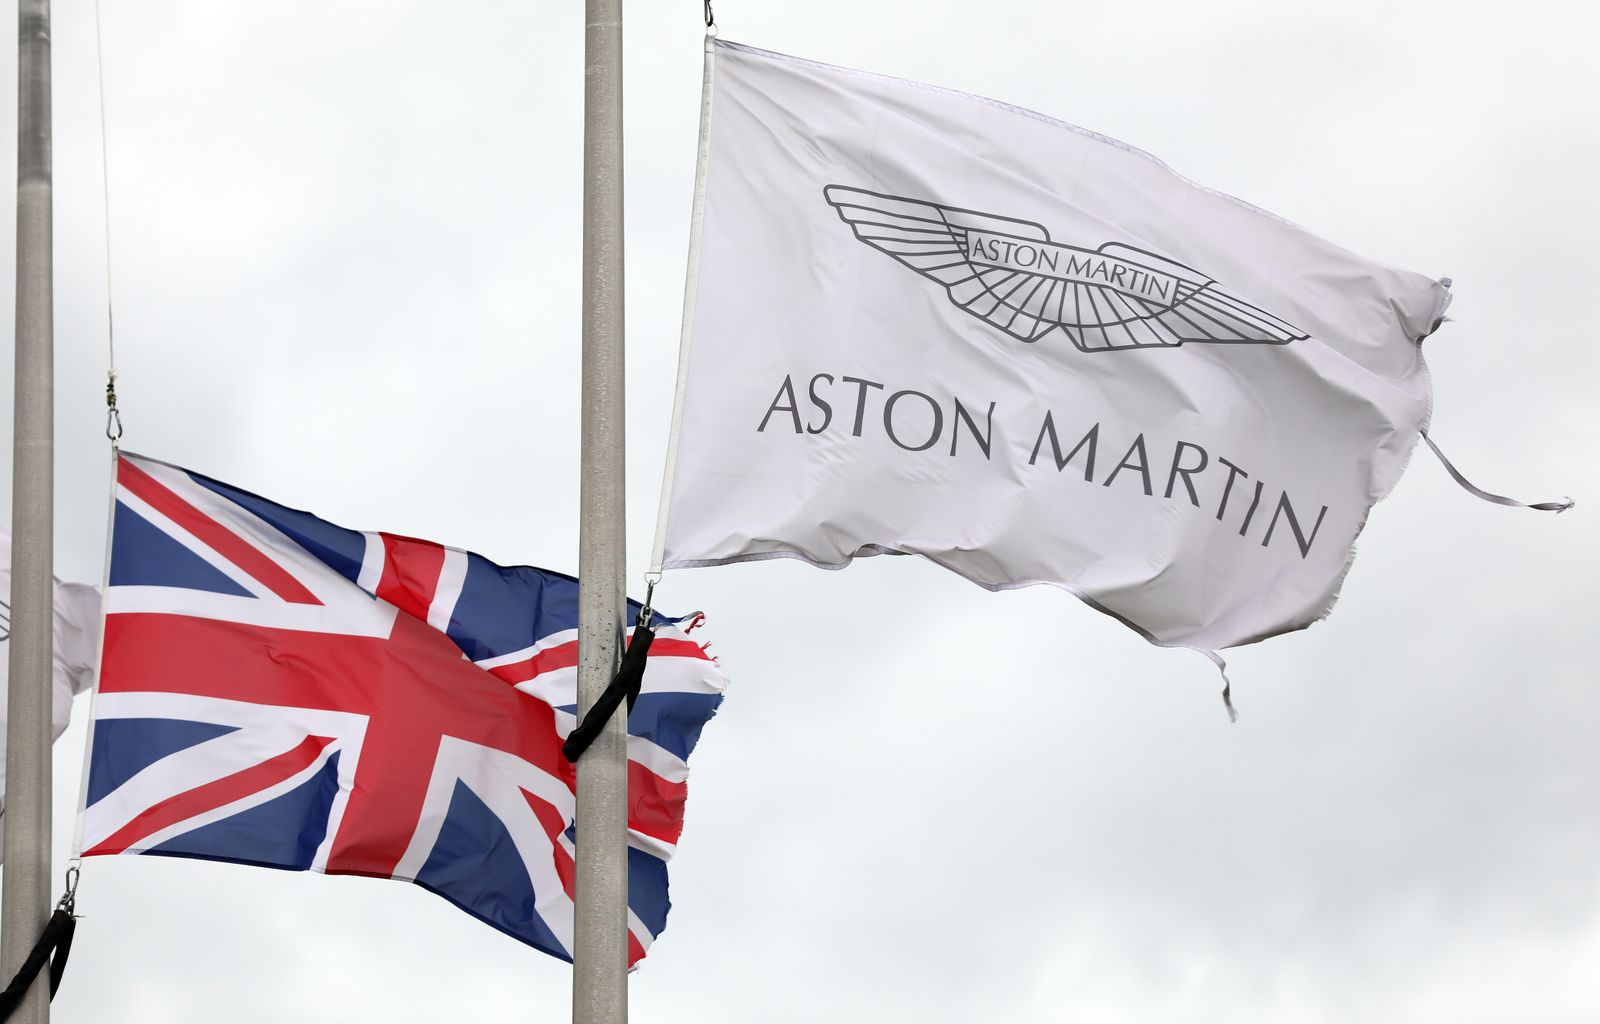 Manufacturing At The Aston Martin Holdings U.K. Ltd. Production Line As Company Considers IPO